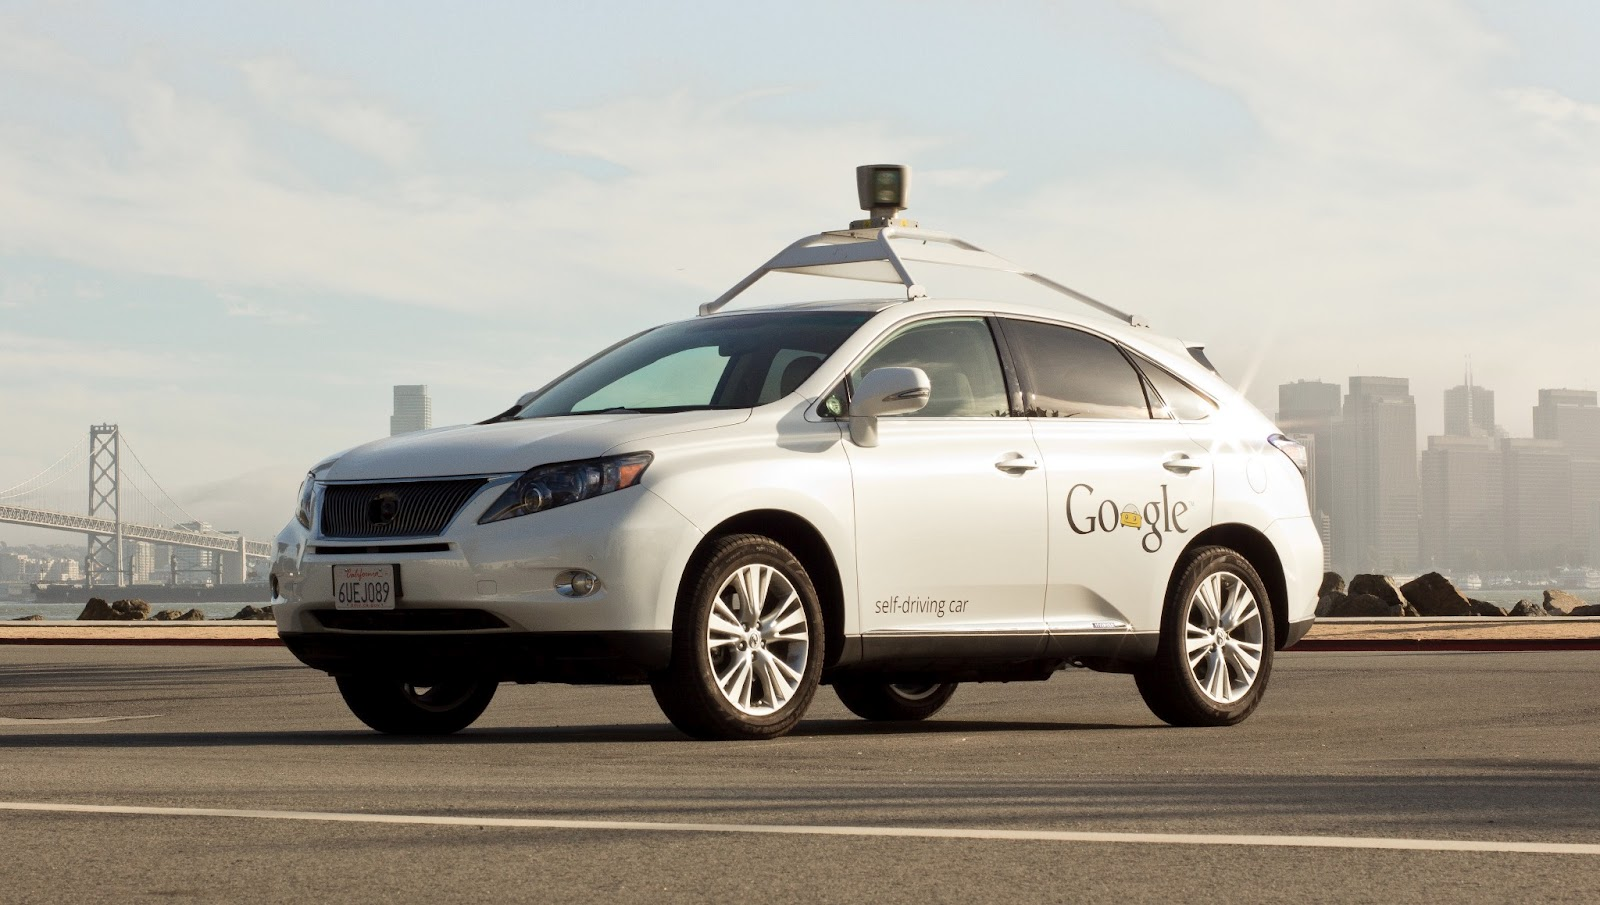 Google Blames Human Error for Self-Driving Car Accidents